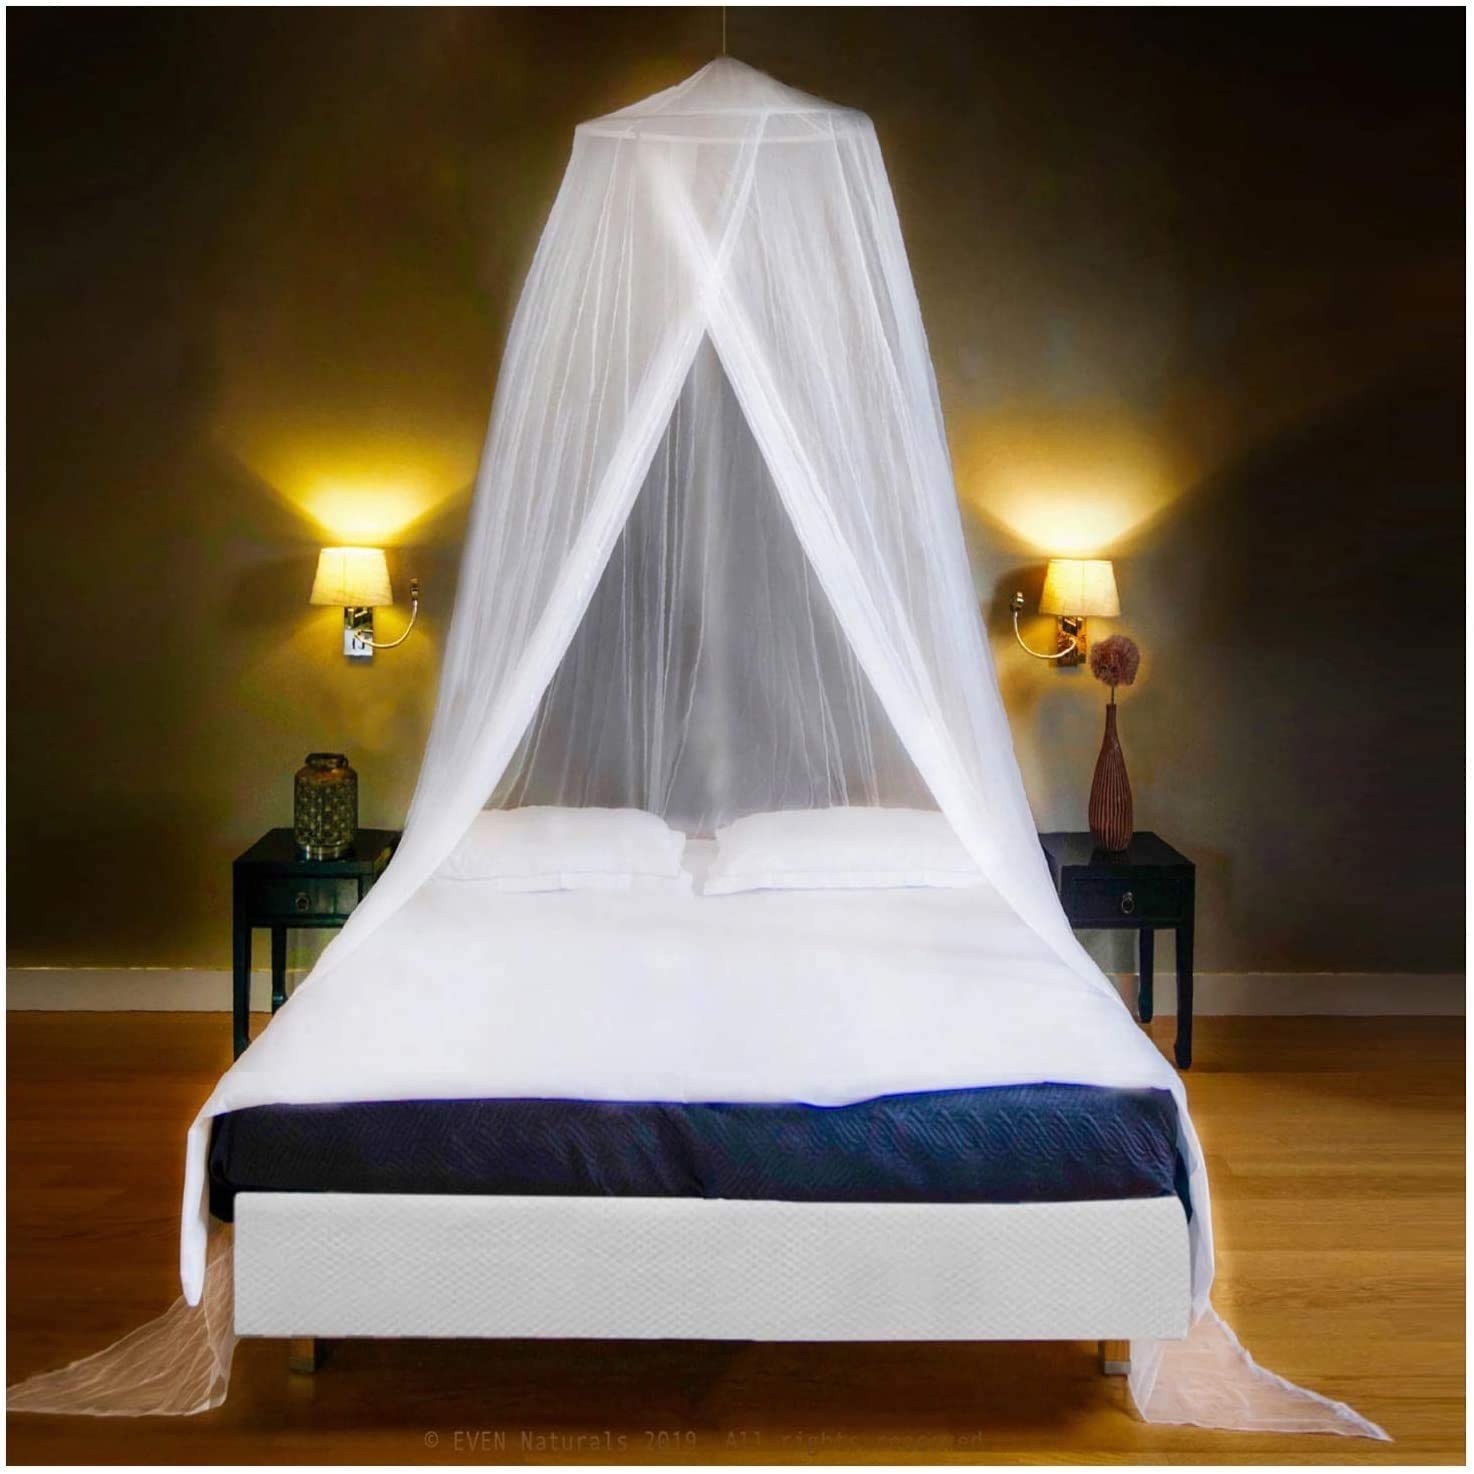 Finest Holes Double Curtain Netting with Entry Twin King Size baixiang Mosquito Net Bed Canopy Storage Bag Quick Easy Installation Large: for Single No Chemicals Added 335 inch